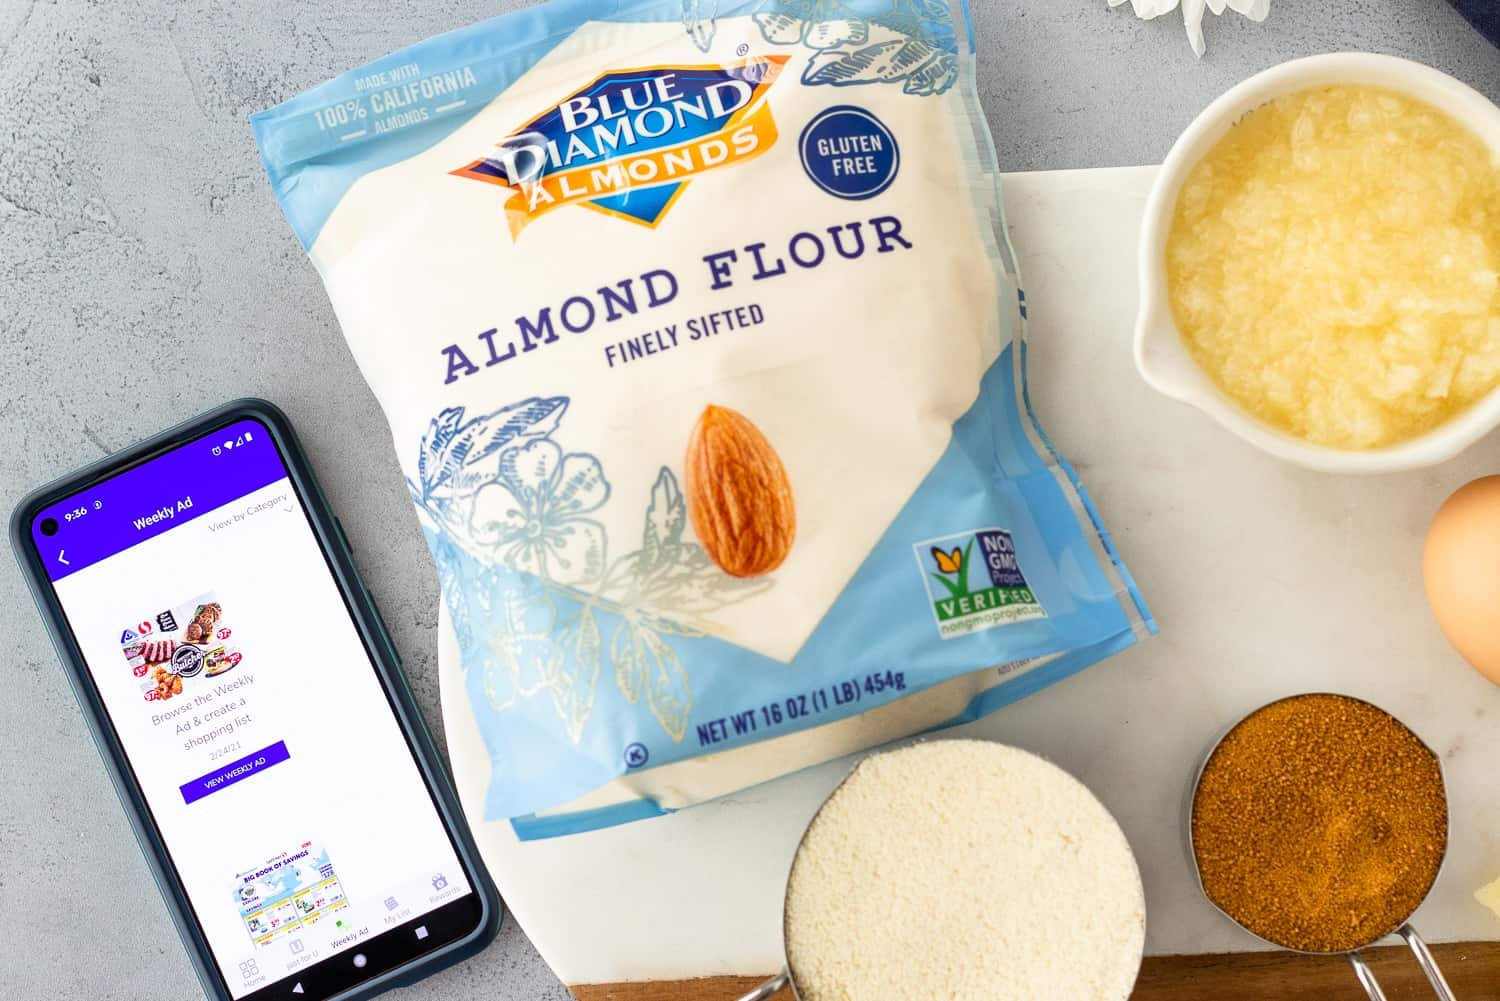 Cell phone with the Albertson's app and Almond Flour package with other ingredients.